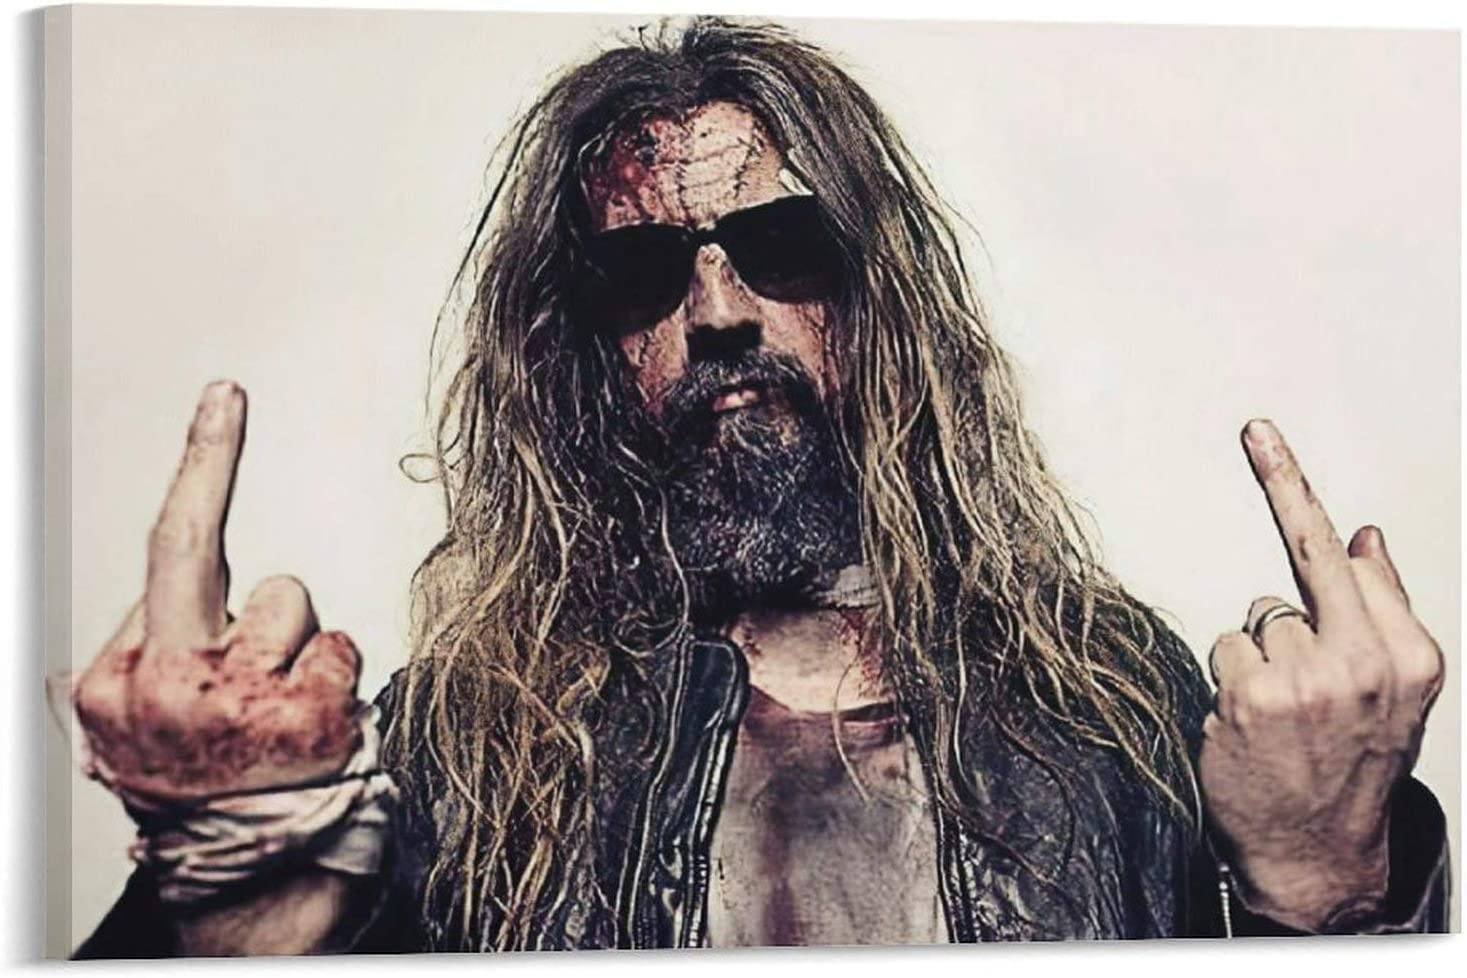 SSD Rob Zombie Men's Hell Billy Canvas A ギフト プレゼント ご褒美 Black Music Poster 特売 Head